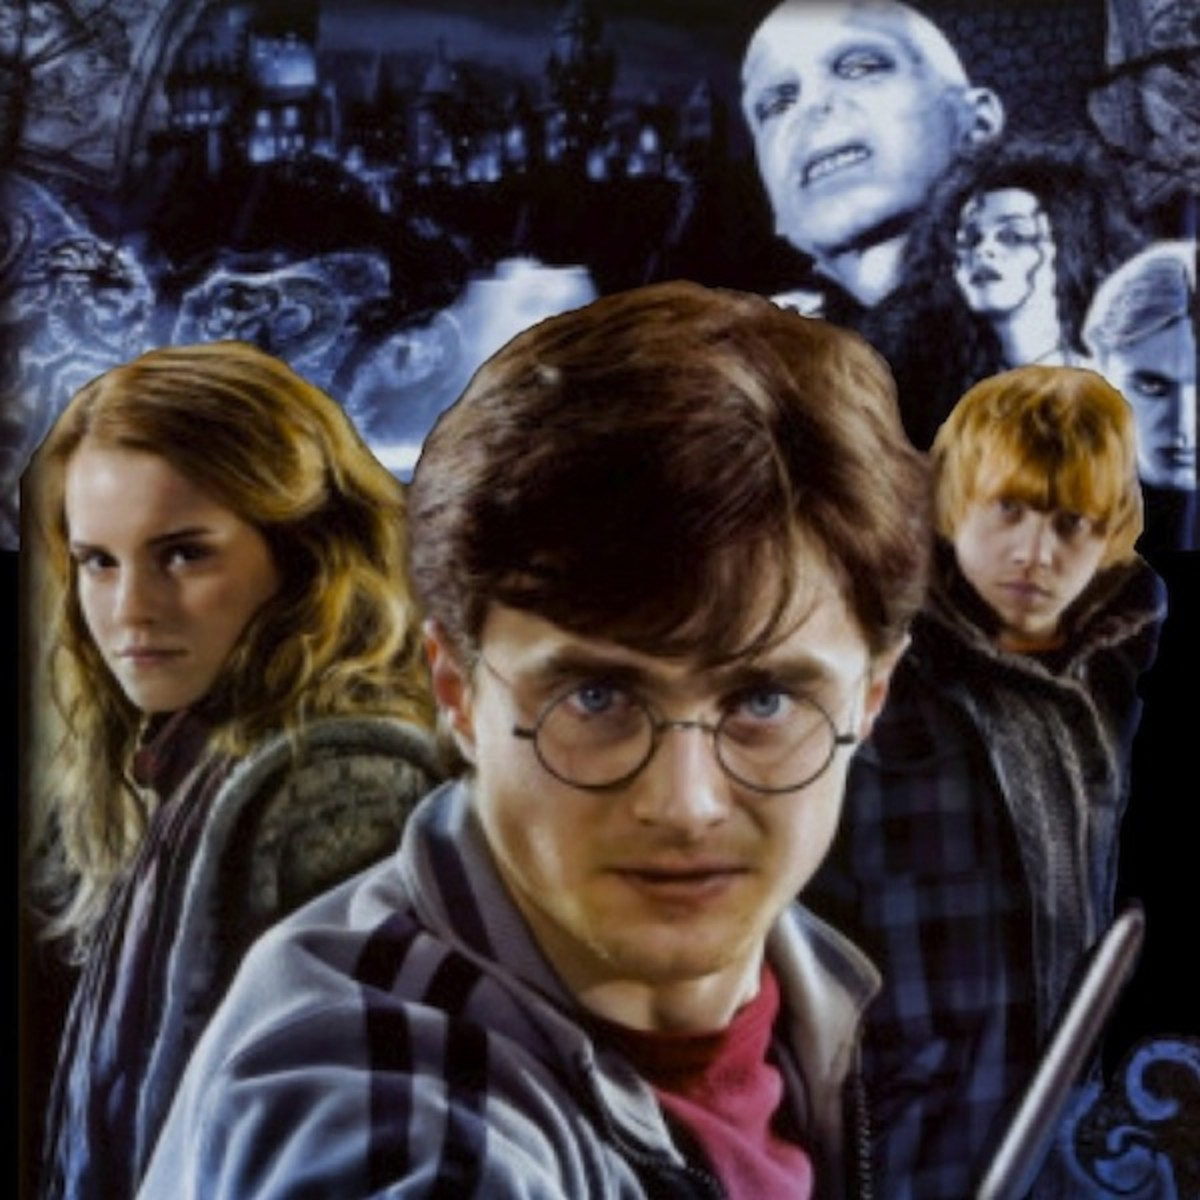 Detail of Deathly Hallows Collage from